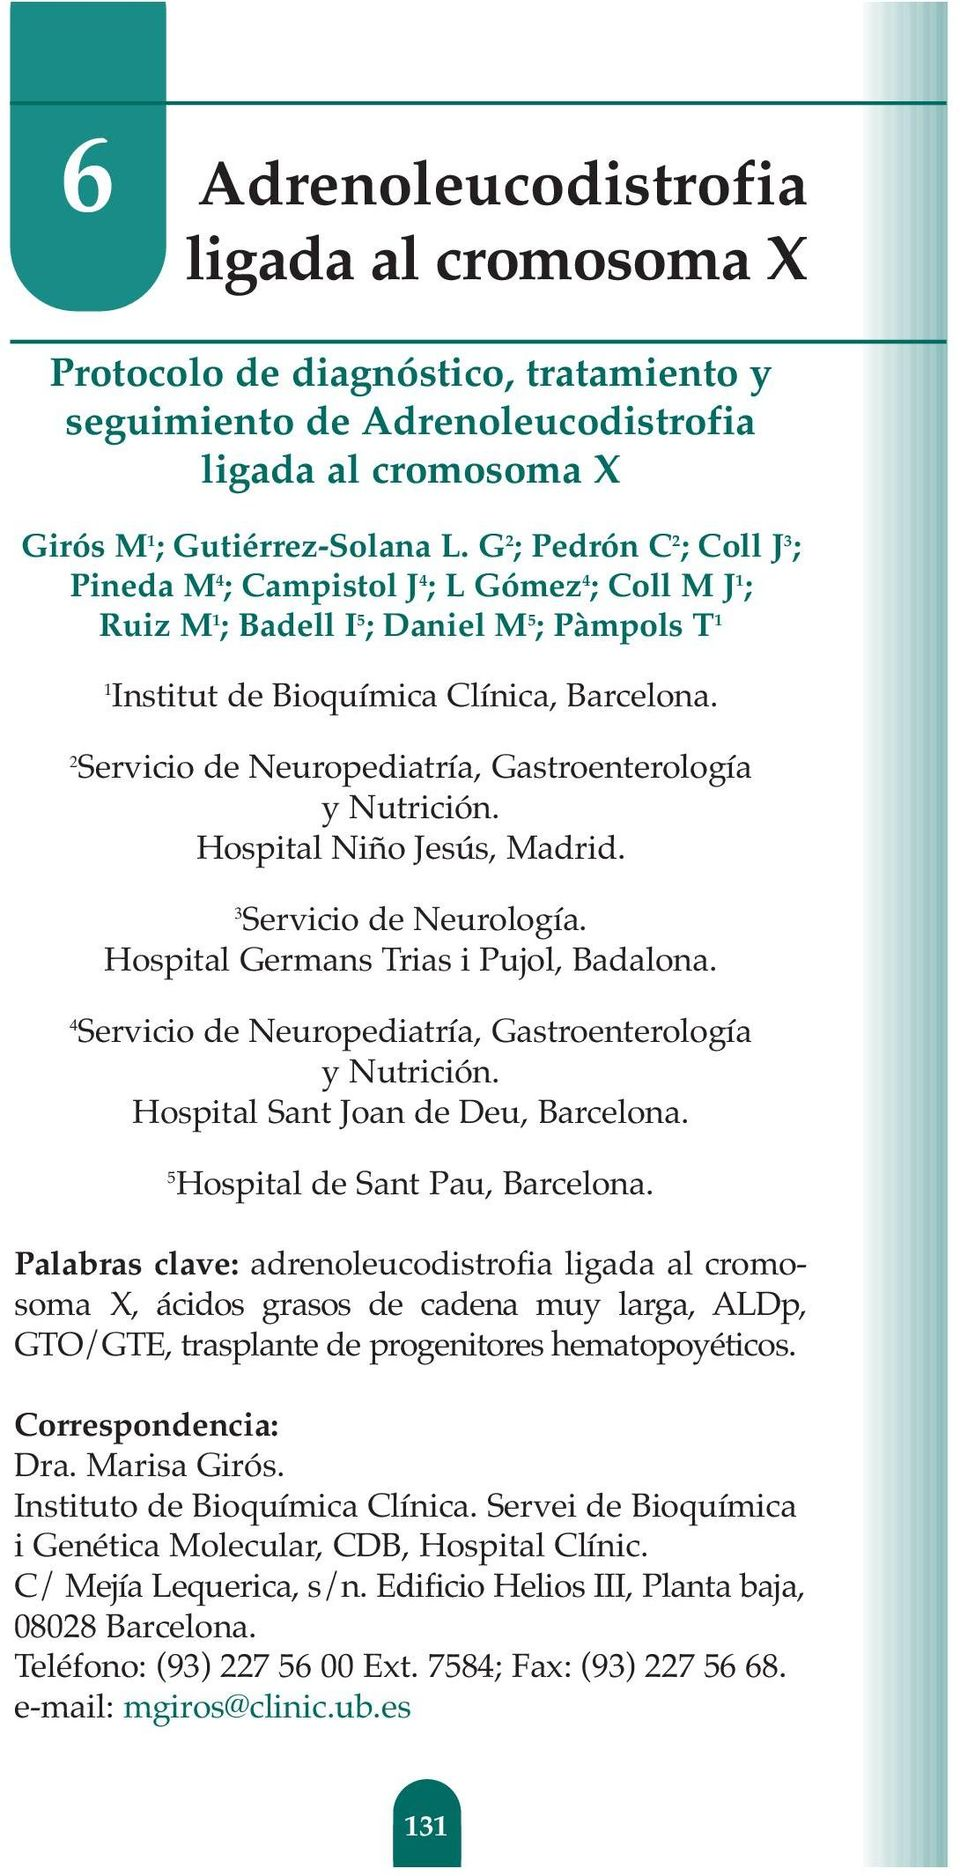 2 Servicio de Neuropediatría, Gastroenterología y Nutrición. Hospital Niño Jesús, Madrid. 3 Servicio de Neurología. Hospital Germans Trias i Pujol, Badalona.